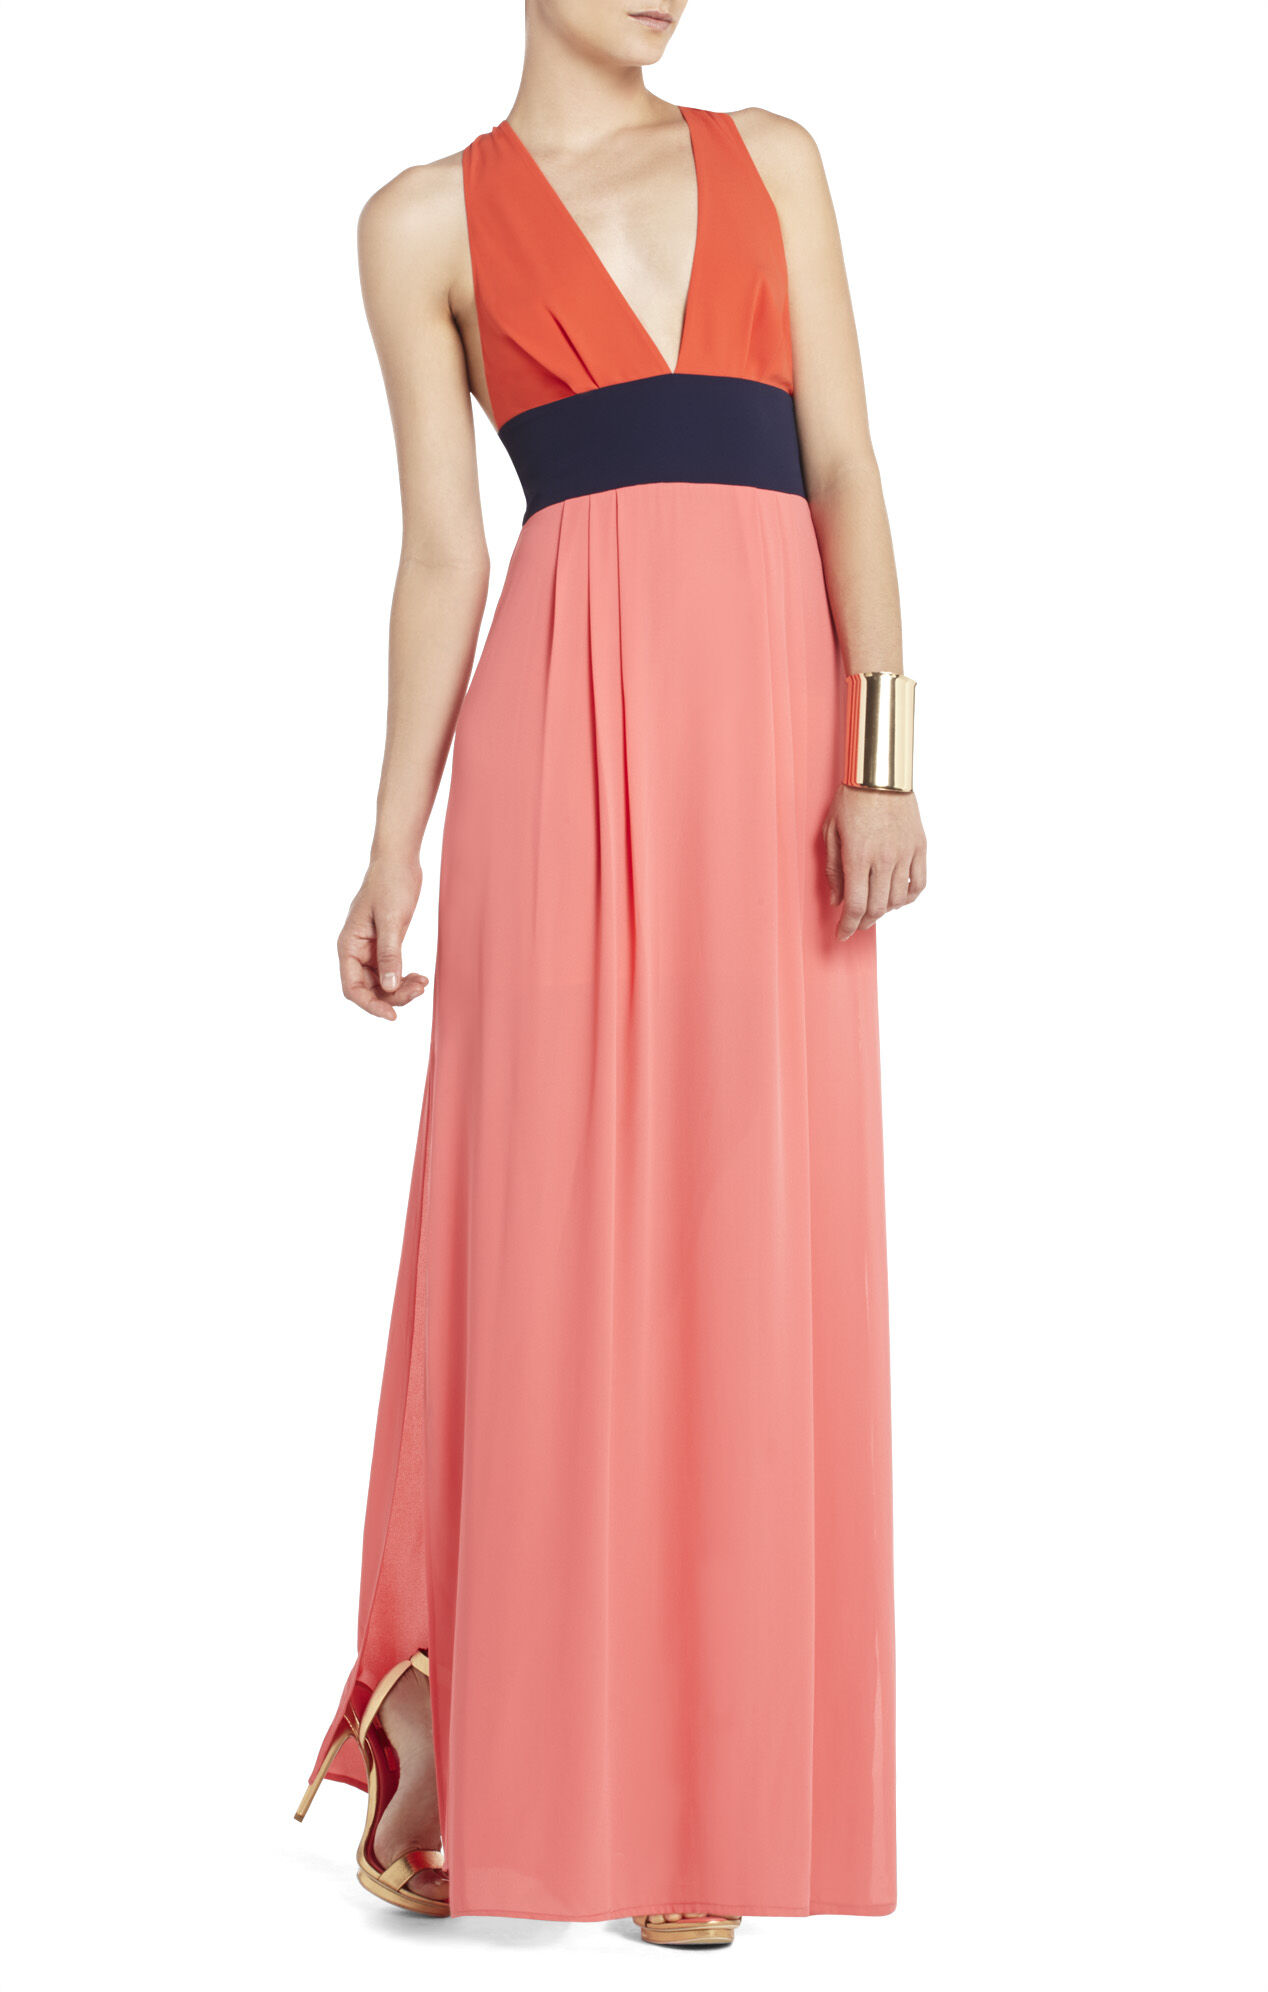 Effie Long V-Neck Color-Blocked Dress